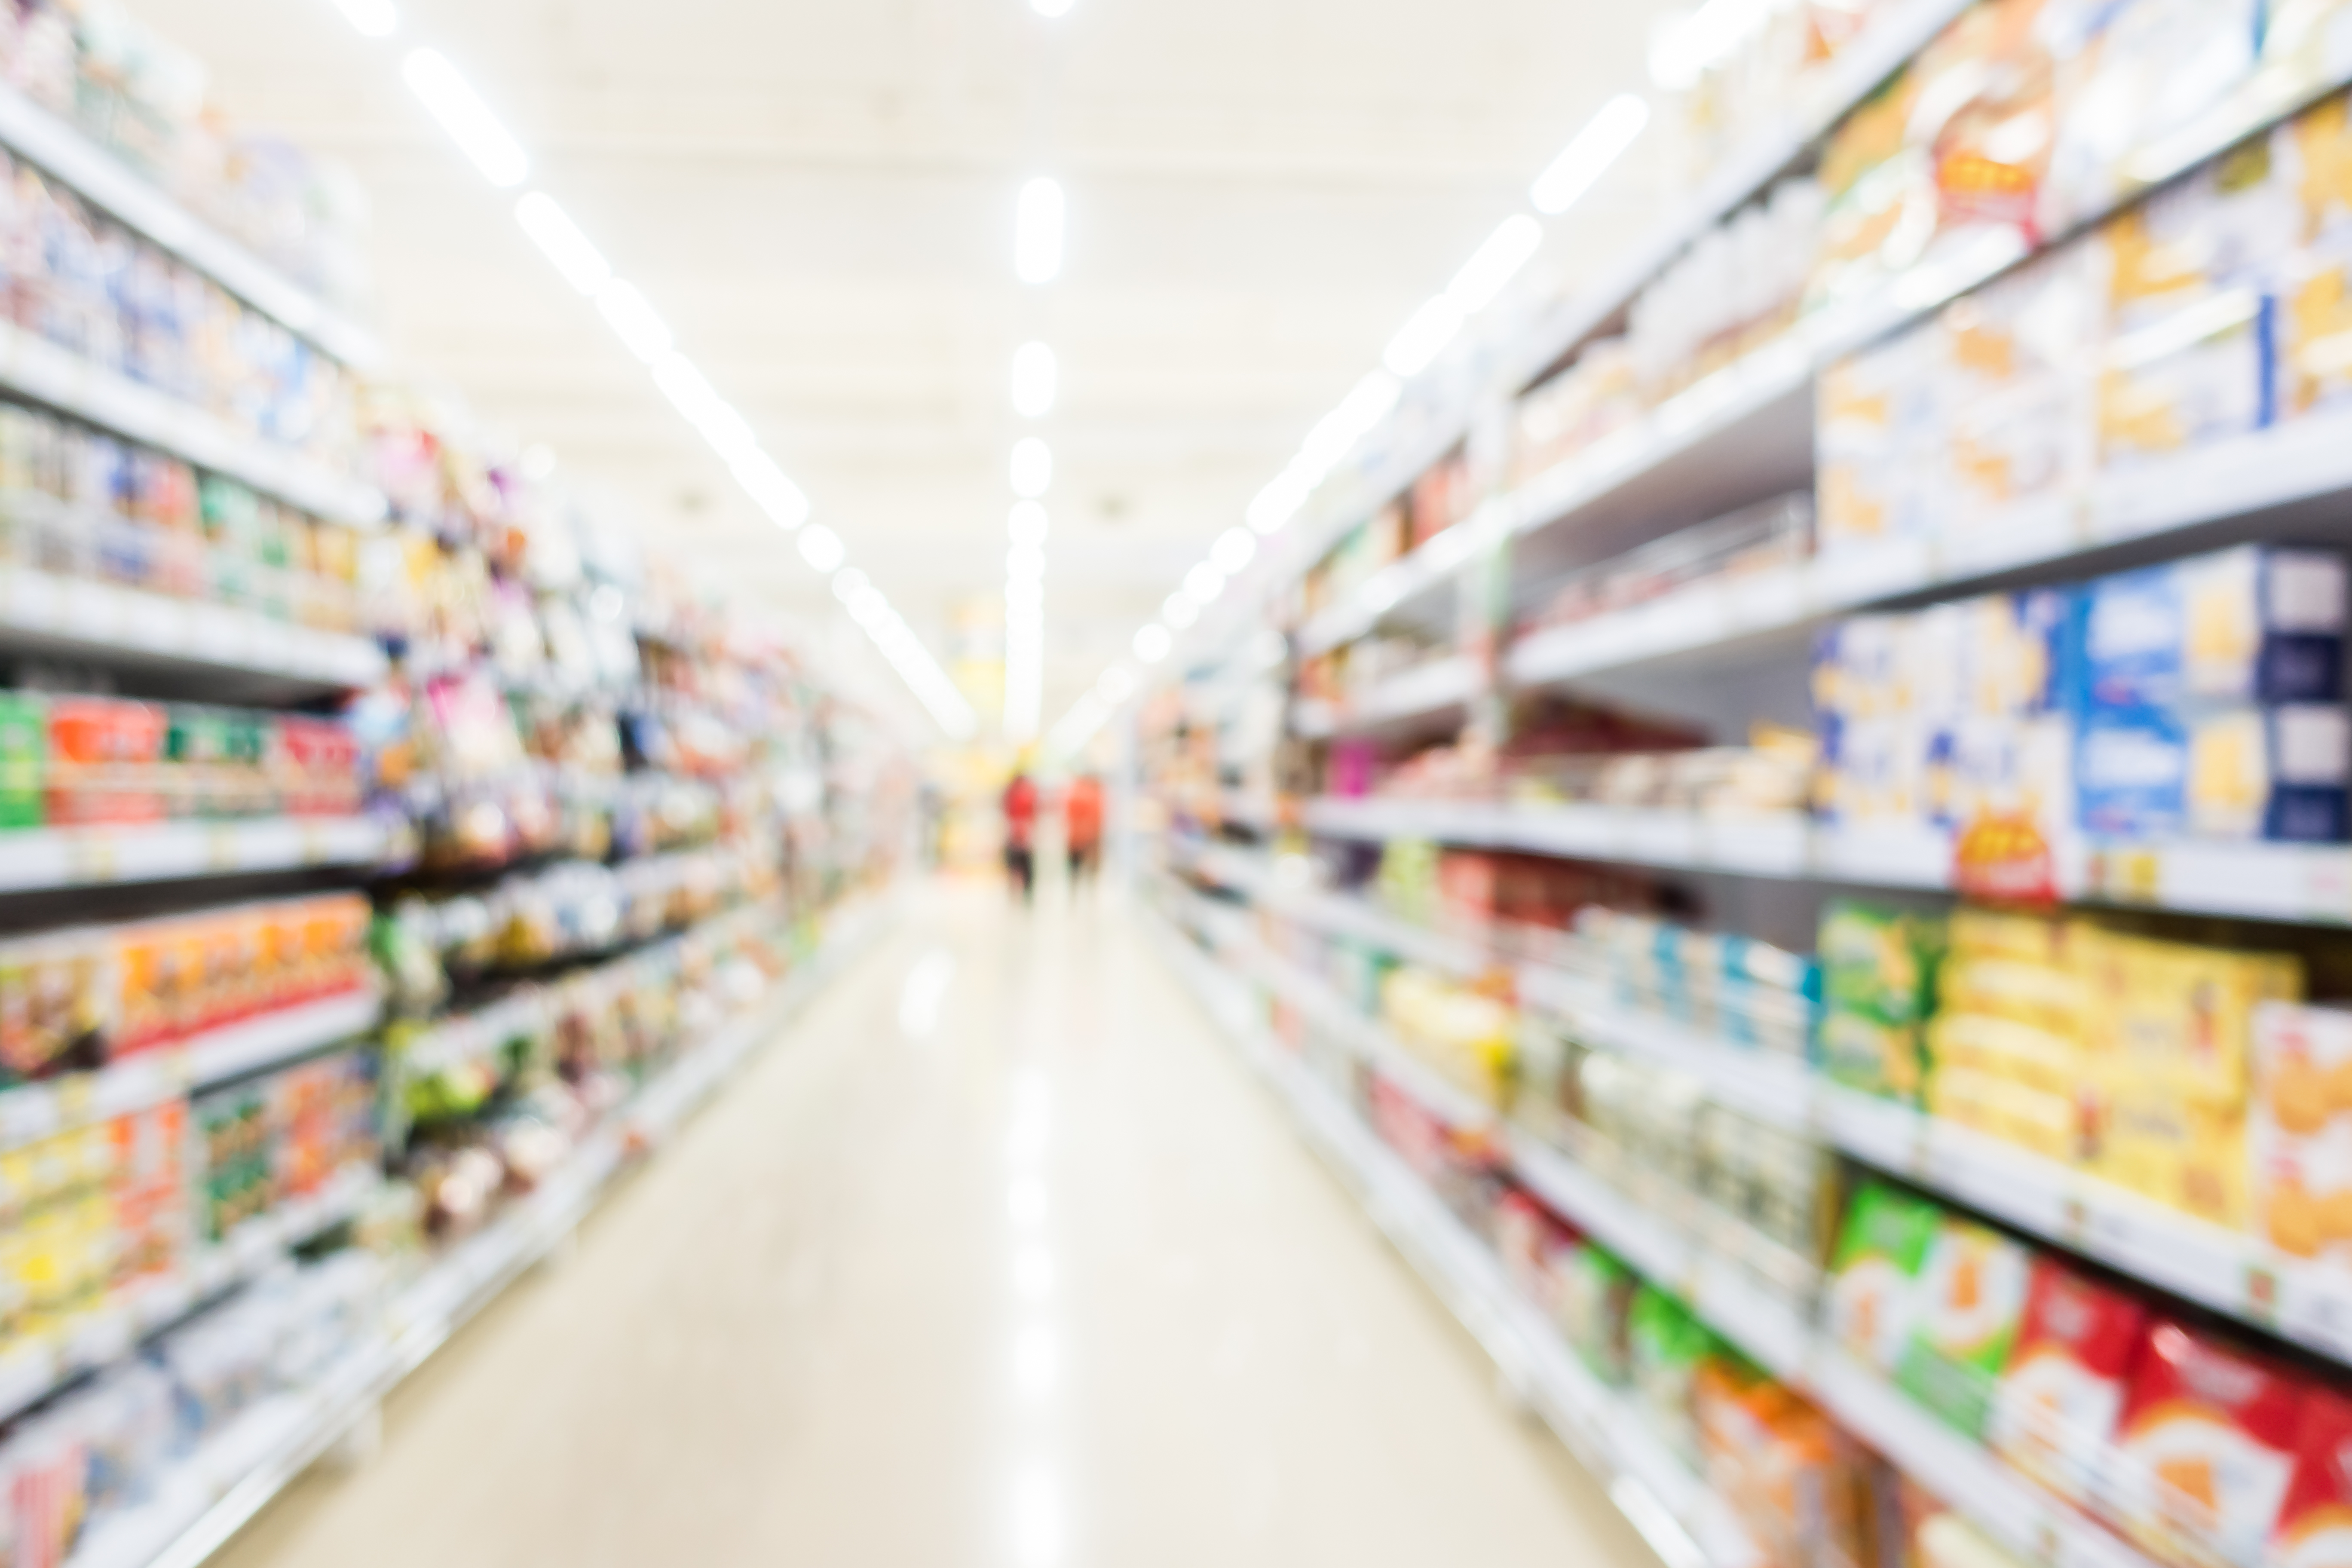 COVID-19: Panic-buying and hoarding, is it necessary?